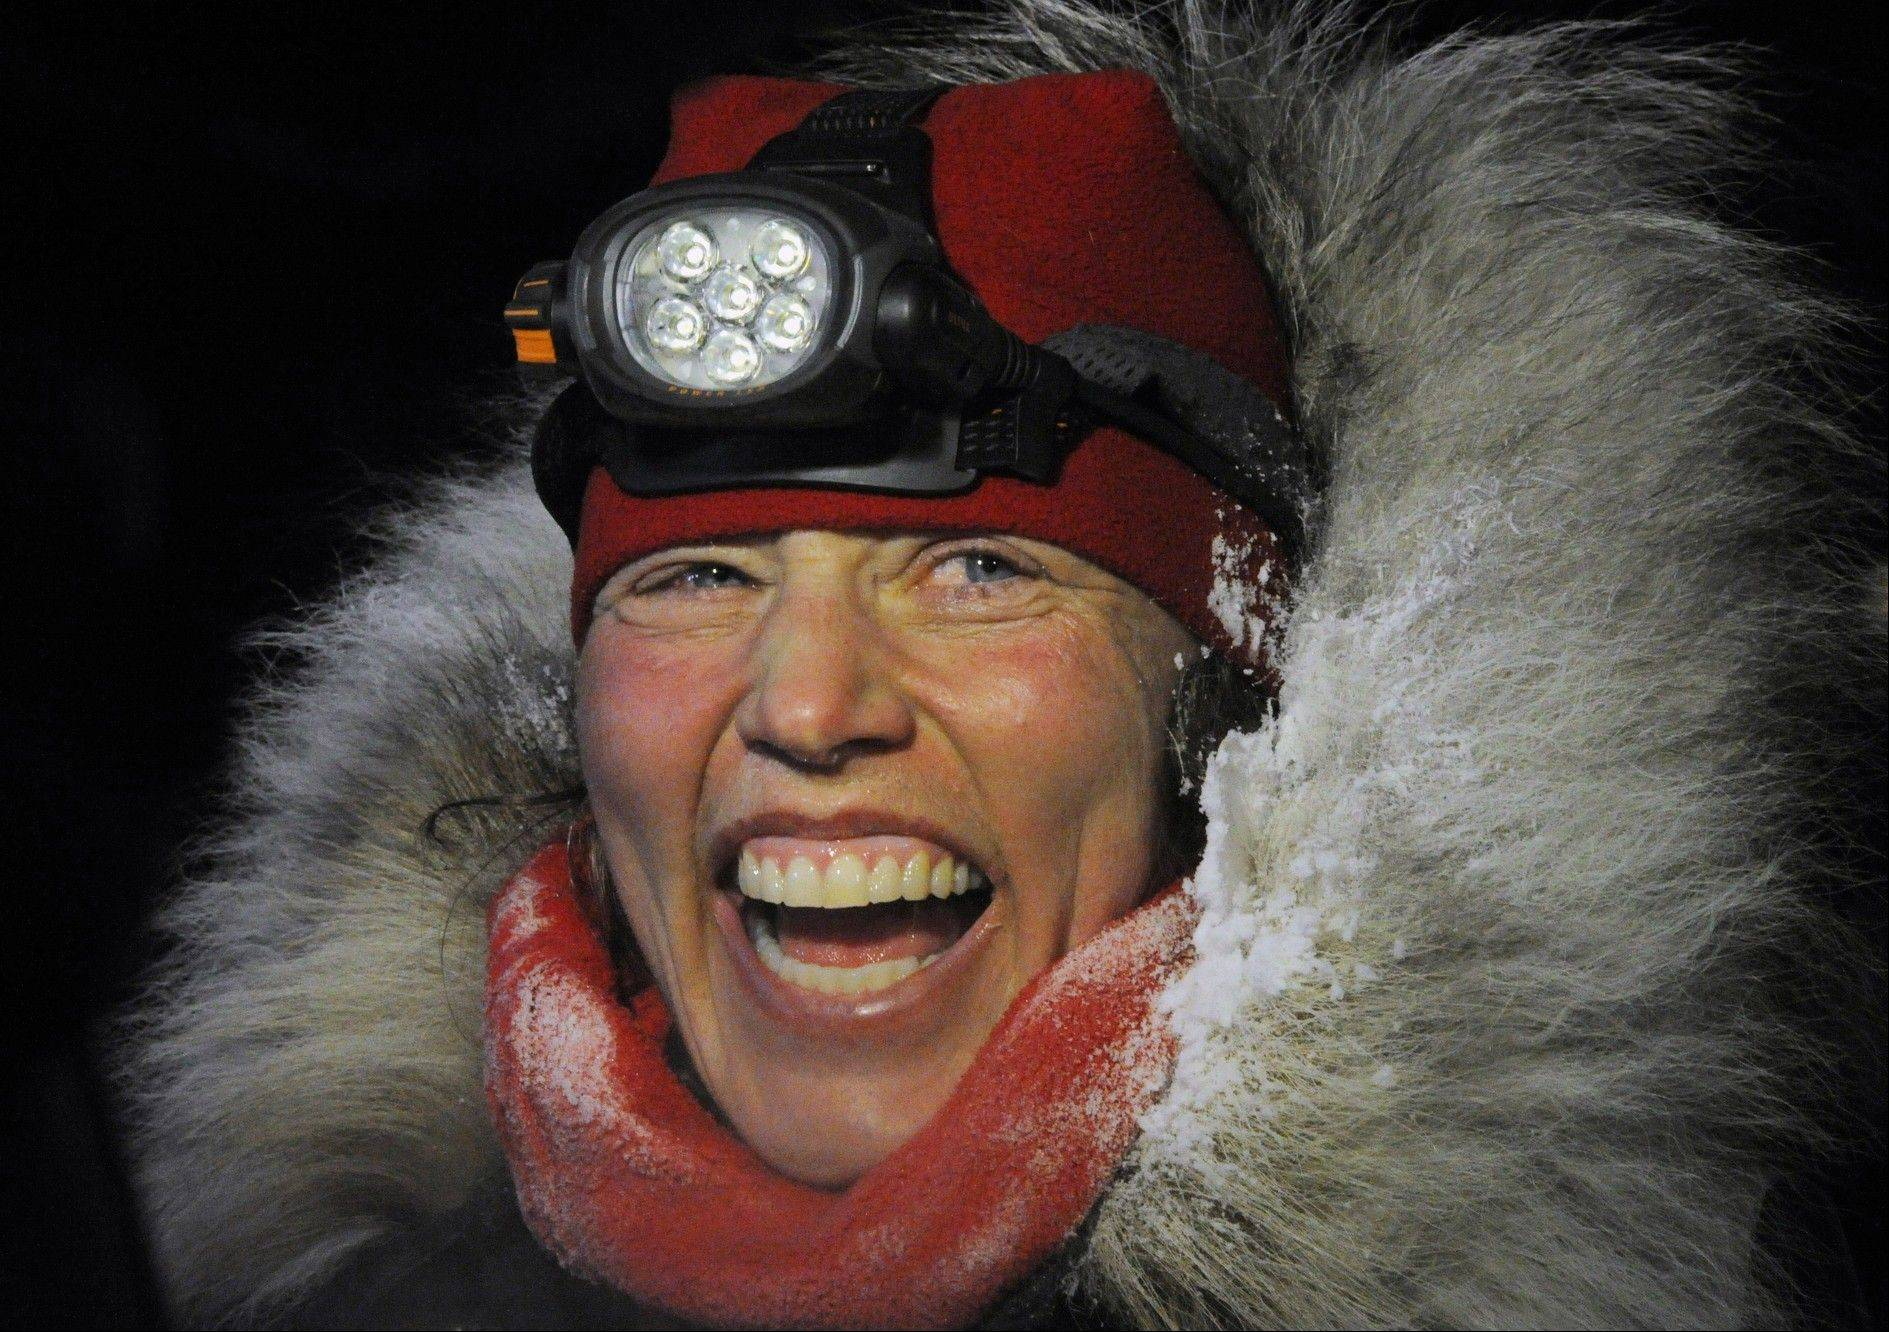 Aliy Zirkle finished second in the Iditarod for the second consecutive year when her dog team crossed under the burled arch in Nome on Tuesday evening, March 12, 2013.